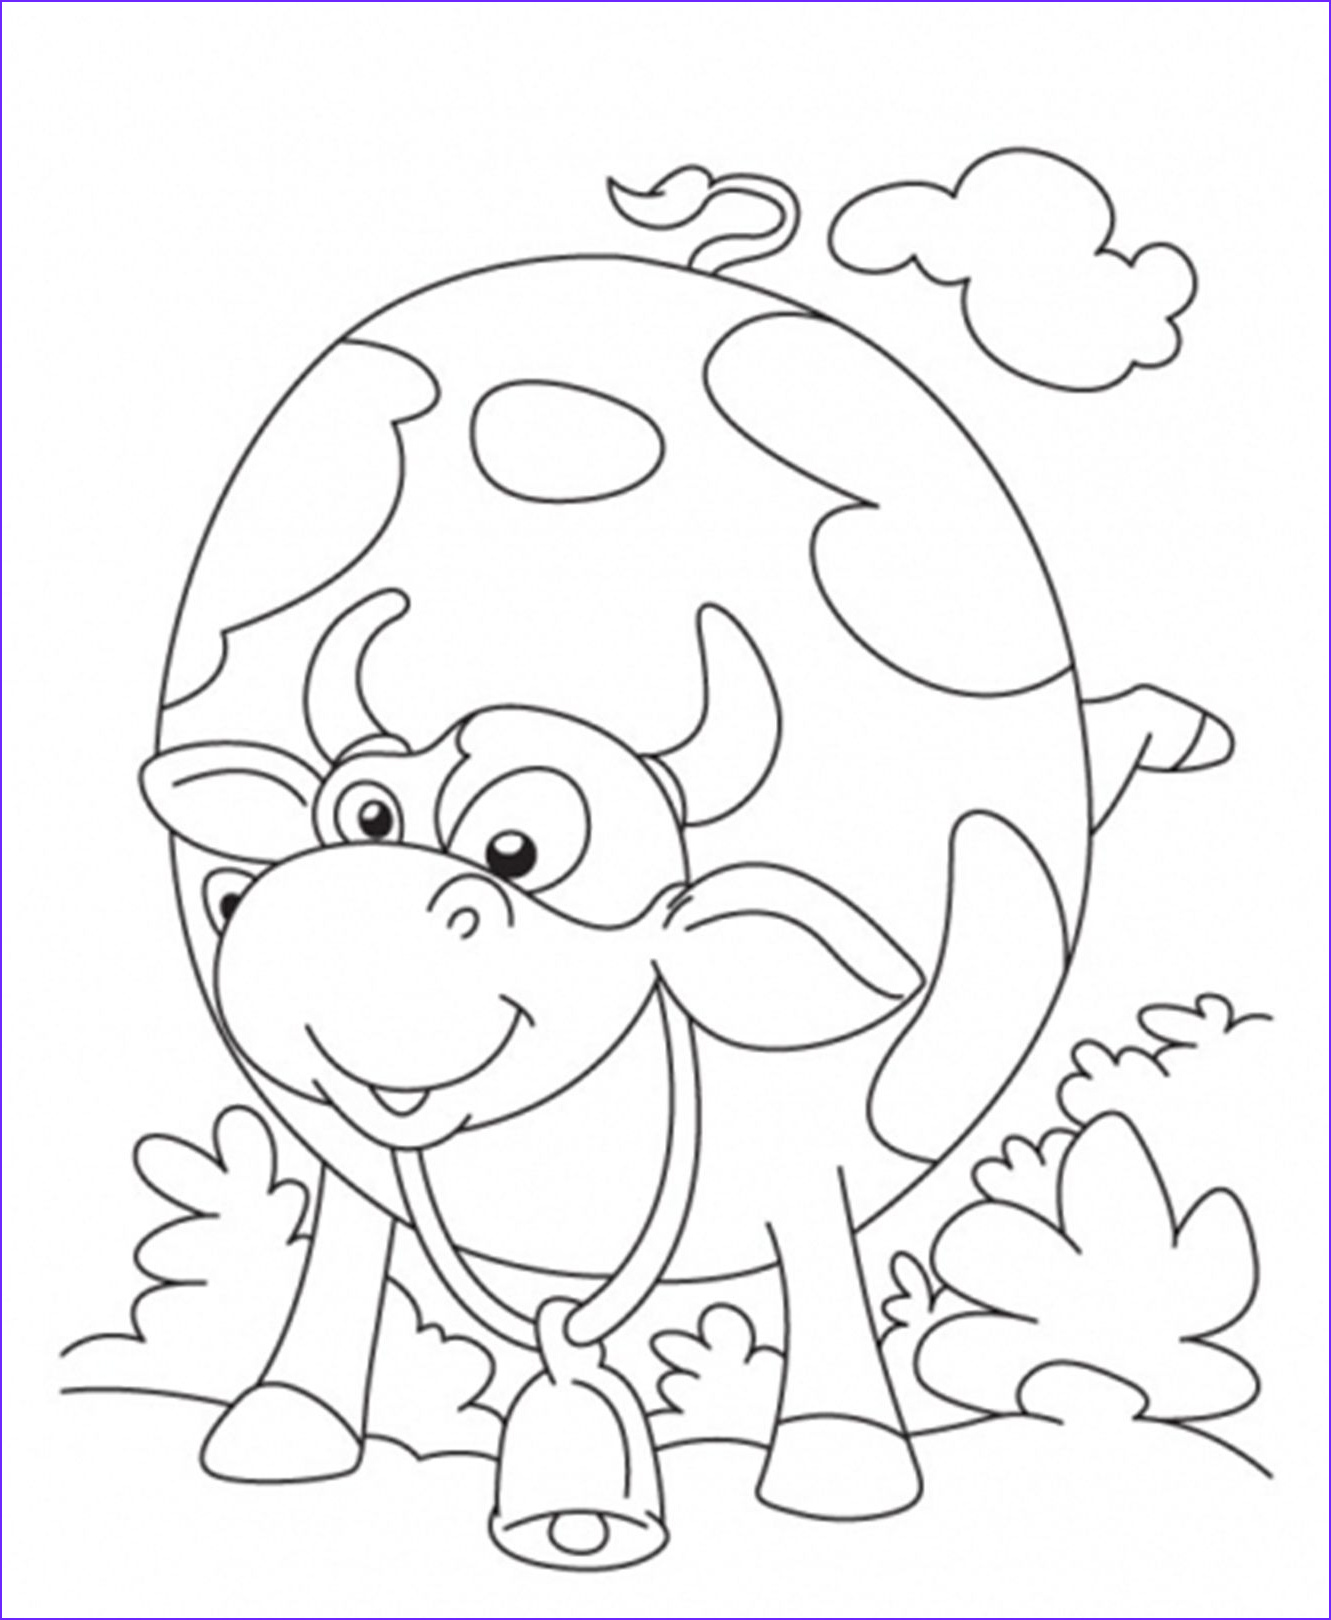 """Cow Coloring Pages Beautiful Image Icolor """" Little Kids Pages"""" I Love to Color with the Kids"""